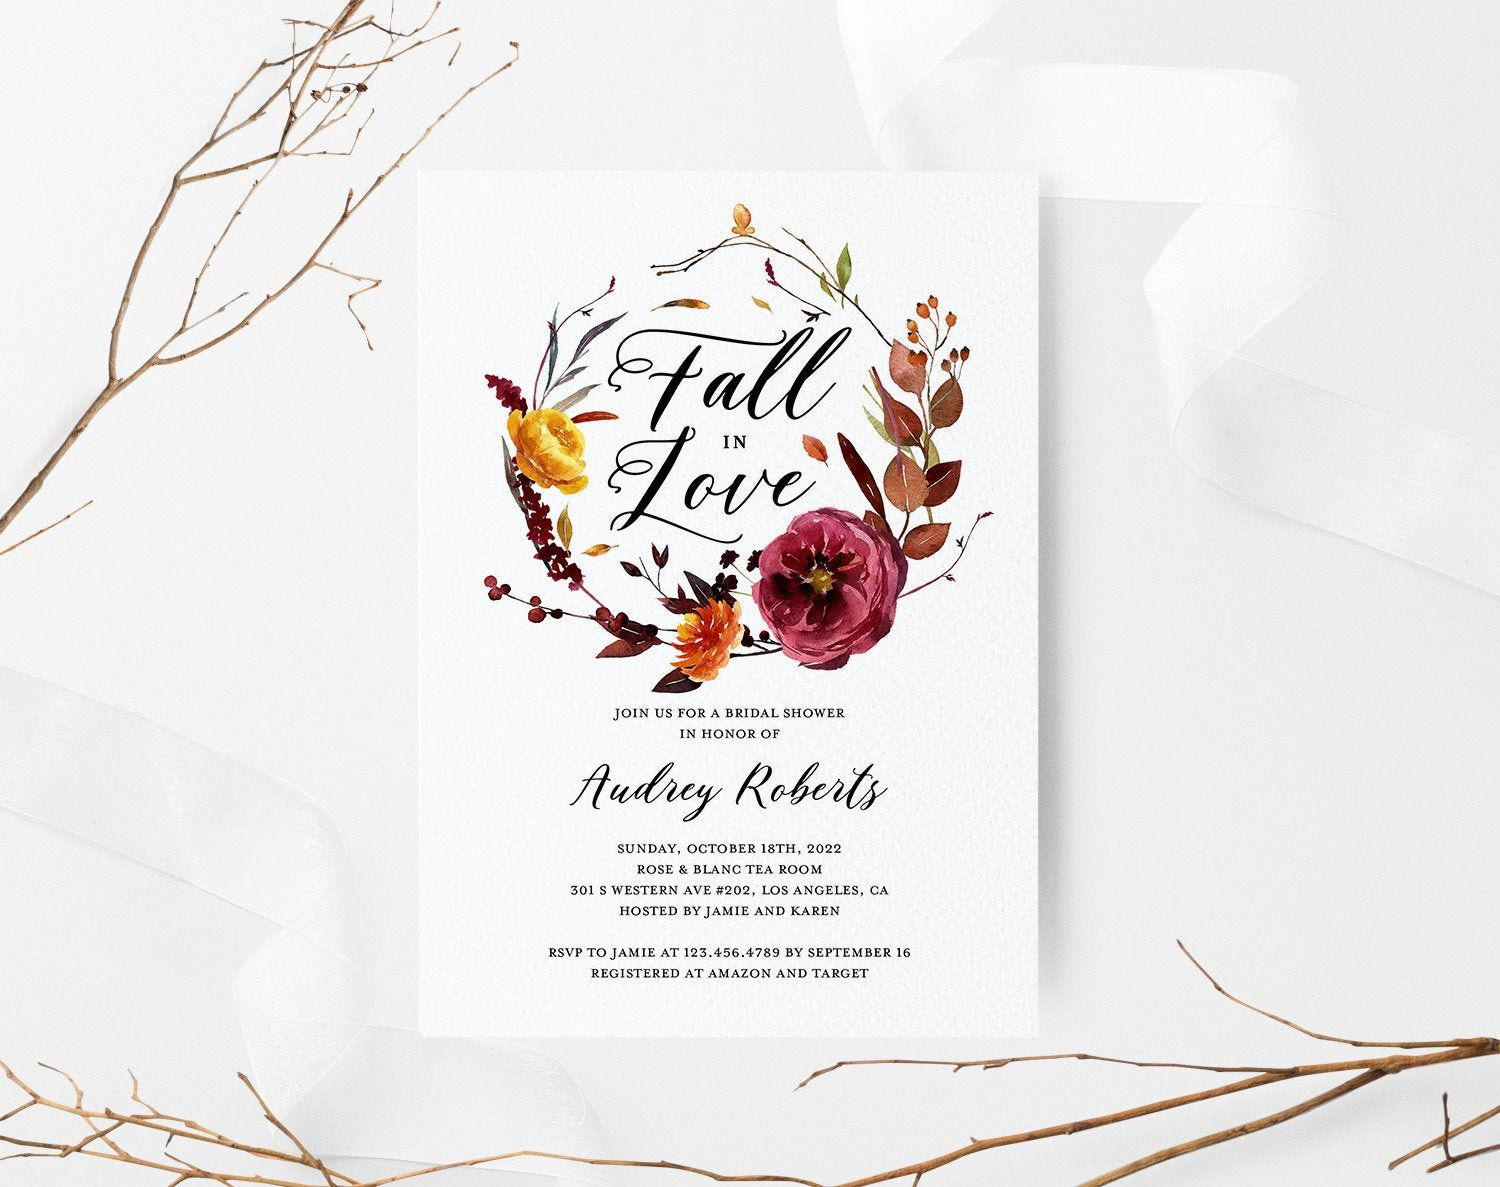 Fall in love bridal shower invitation template floral